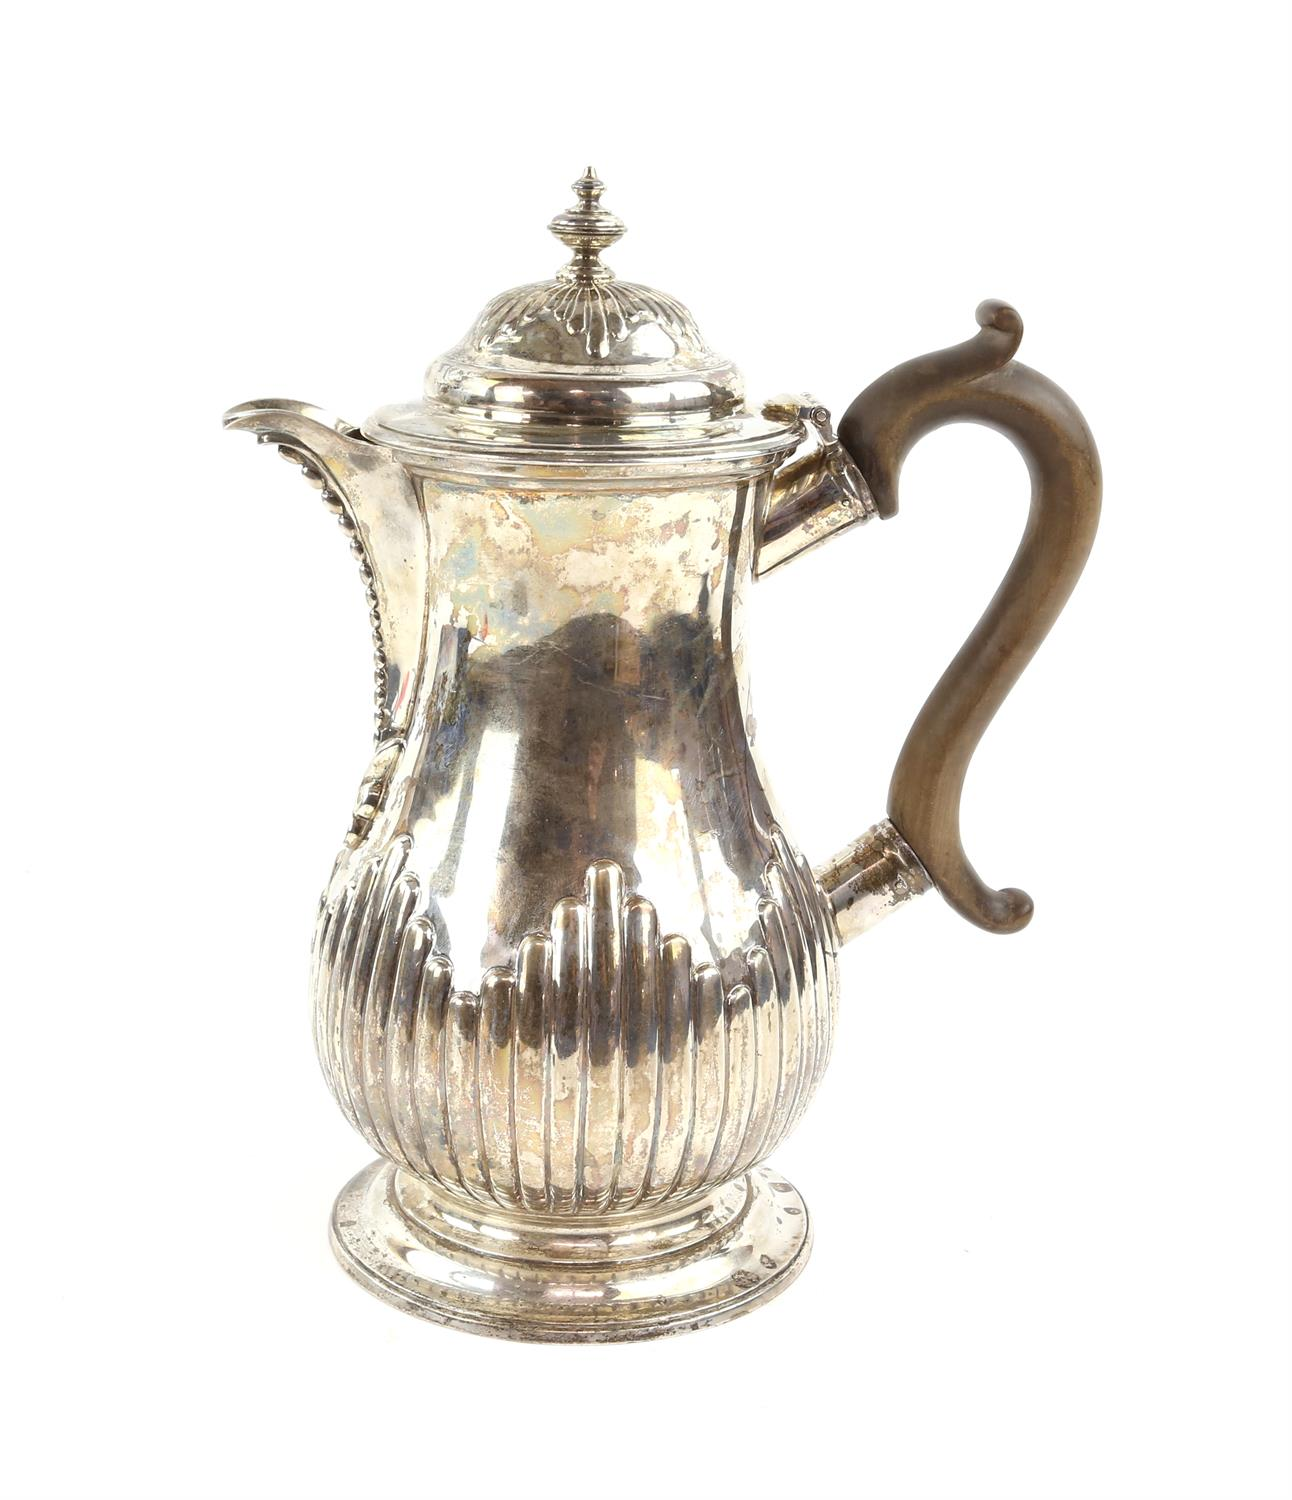 George III silver jug by John Emes, London 1798,half reeded decoration the cover with urn finial, - Image 2 of 4